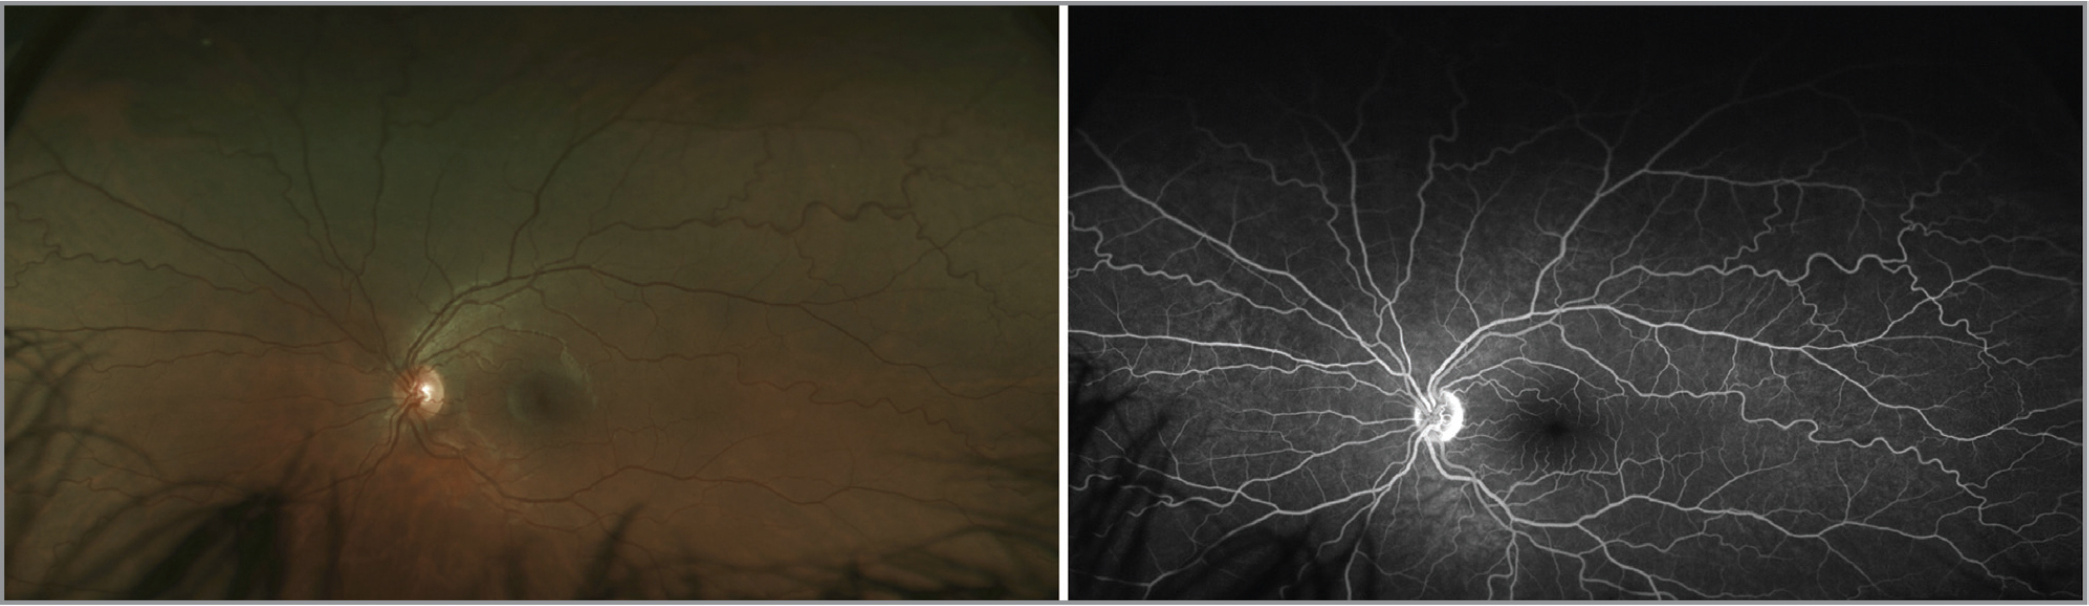 Fundus image (left) and widefield fluorescein angiography (right) of the fellow unaffected eye in a patient with Coats' disease demonstrating retinal vascular tortuosity. The patient has no systemic cardiovascular disease after a thorough workup.